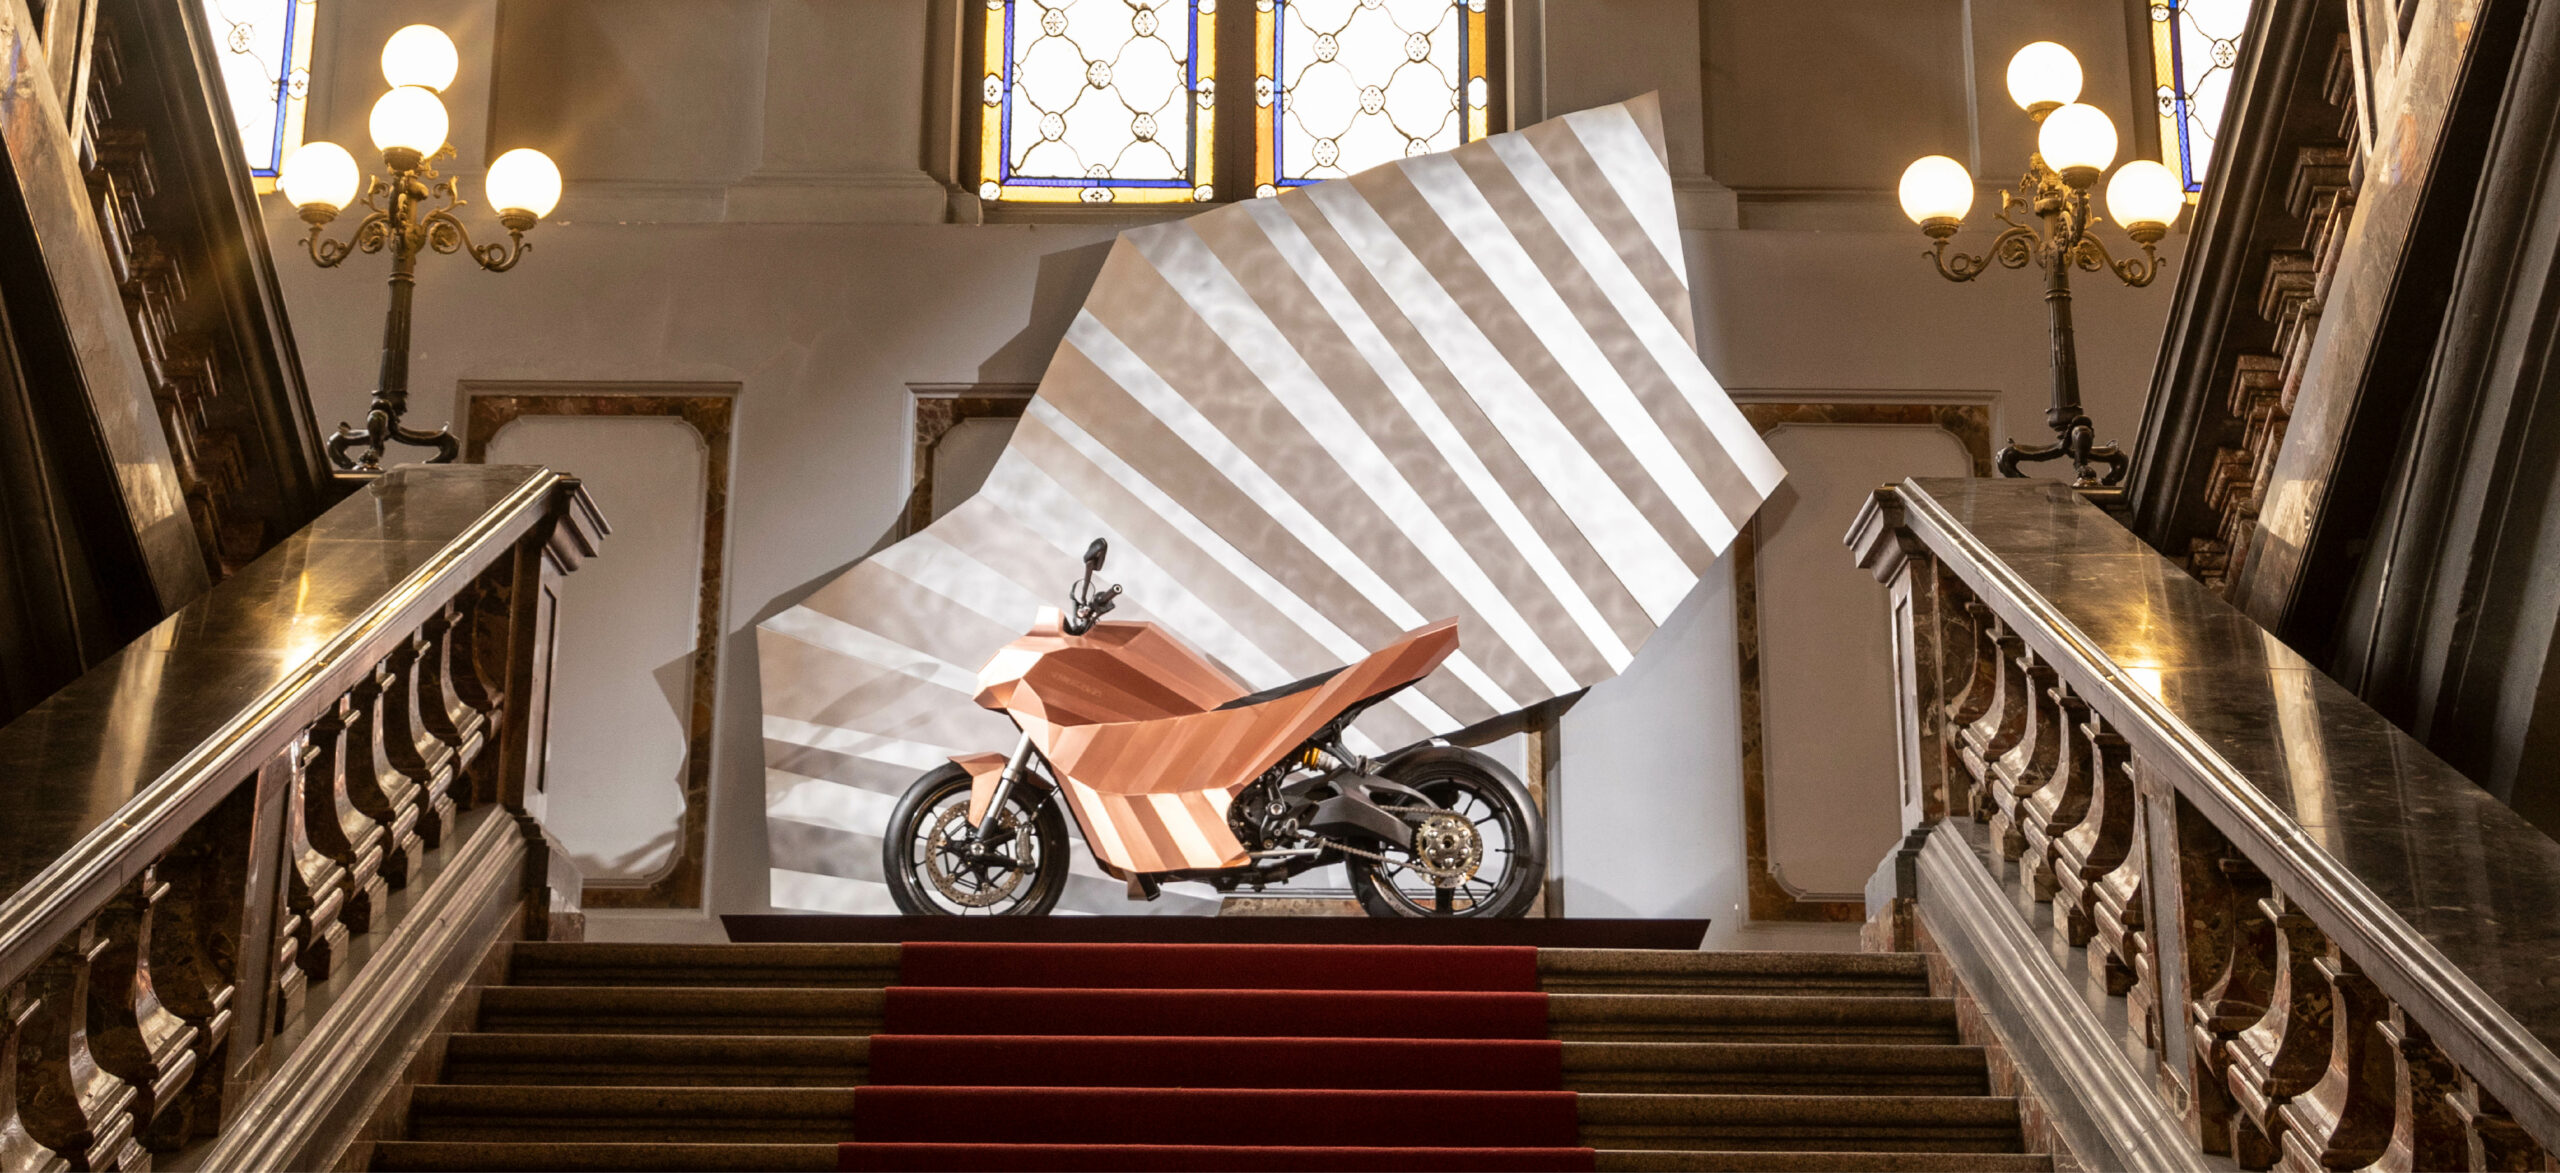 Left side of a standalone copper motorbike built on a Ducati Monster chassis on a quarter landing inside of Litta Palace of Milan, Italy.